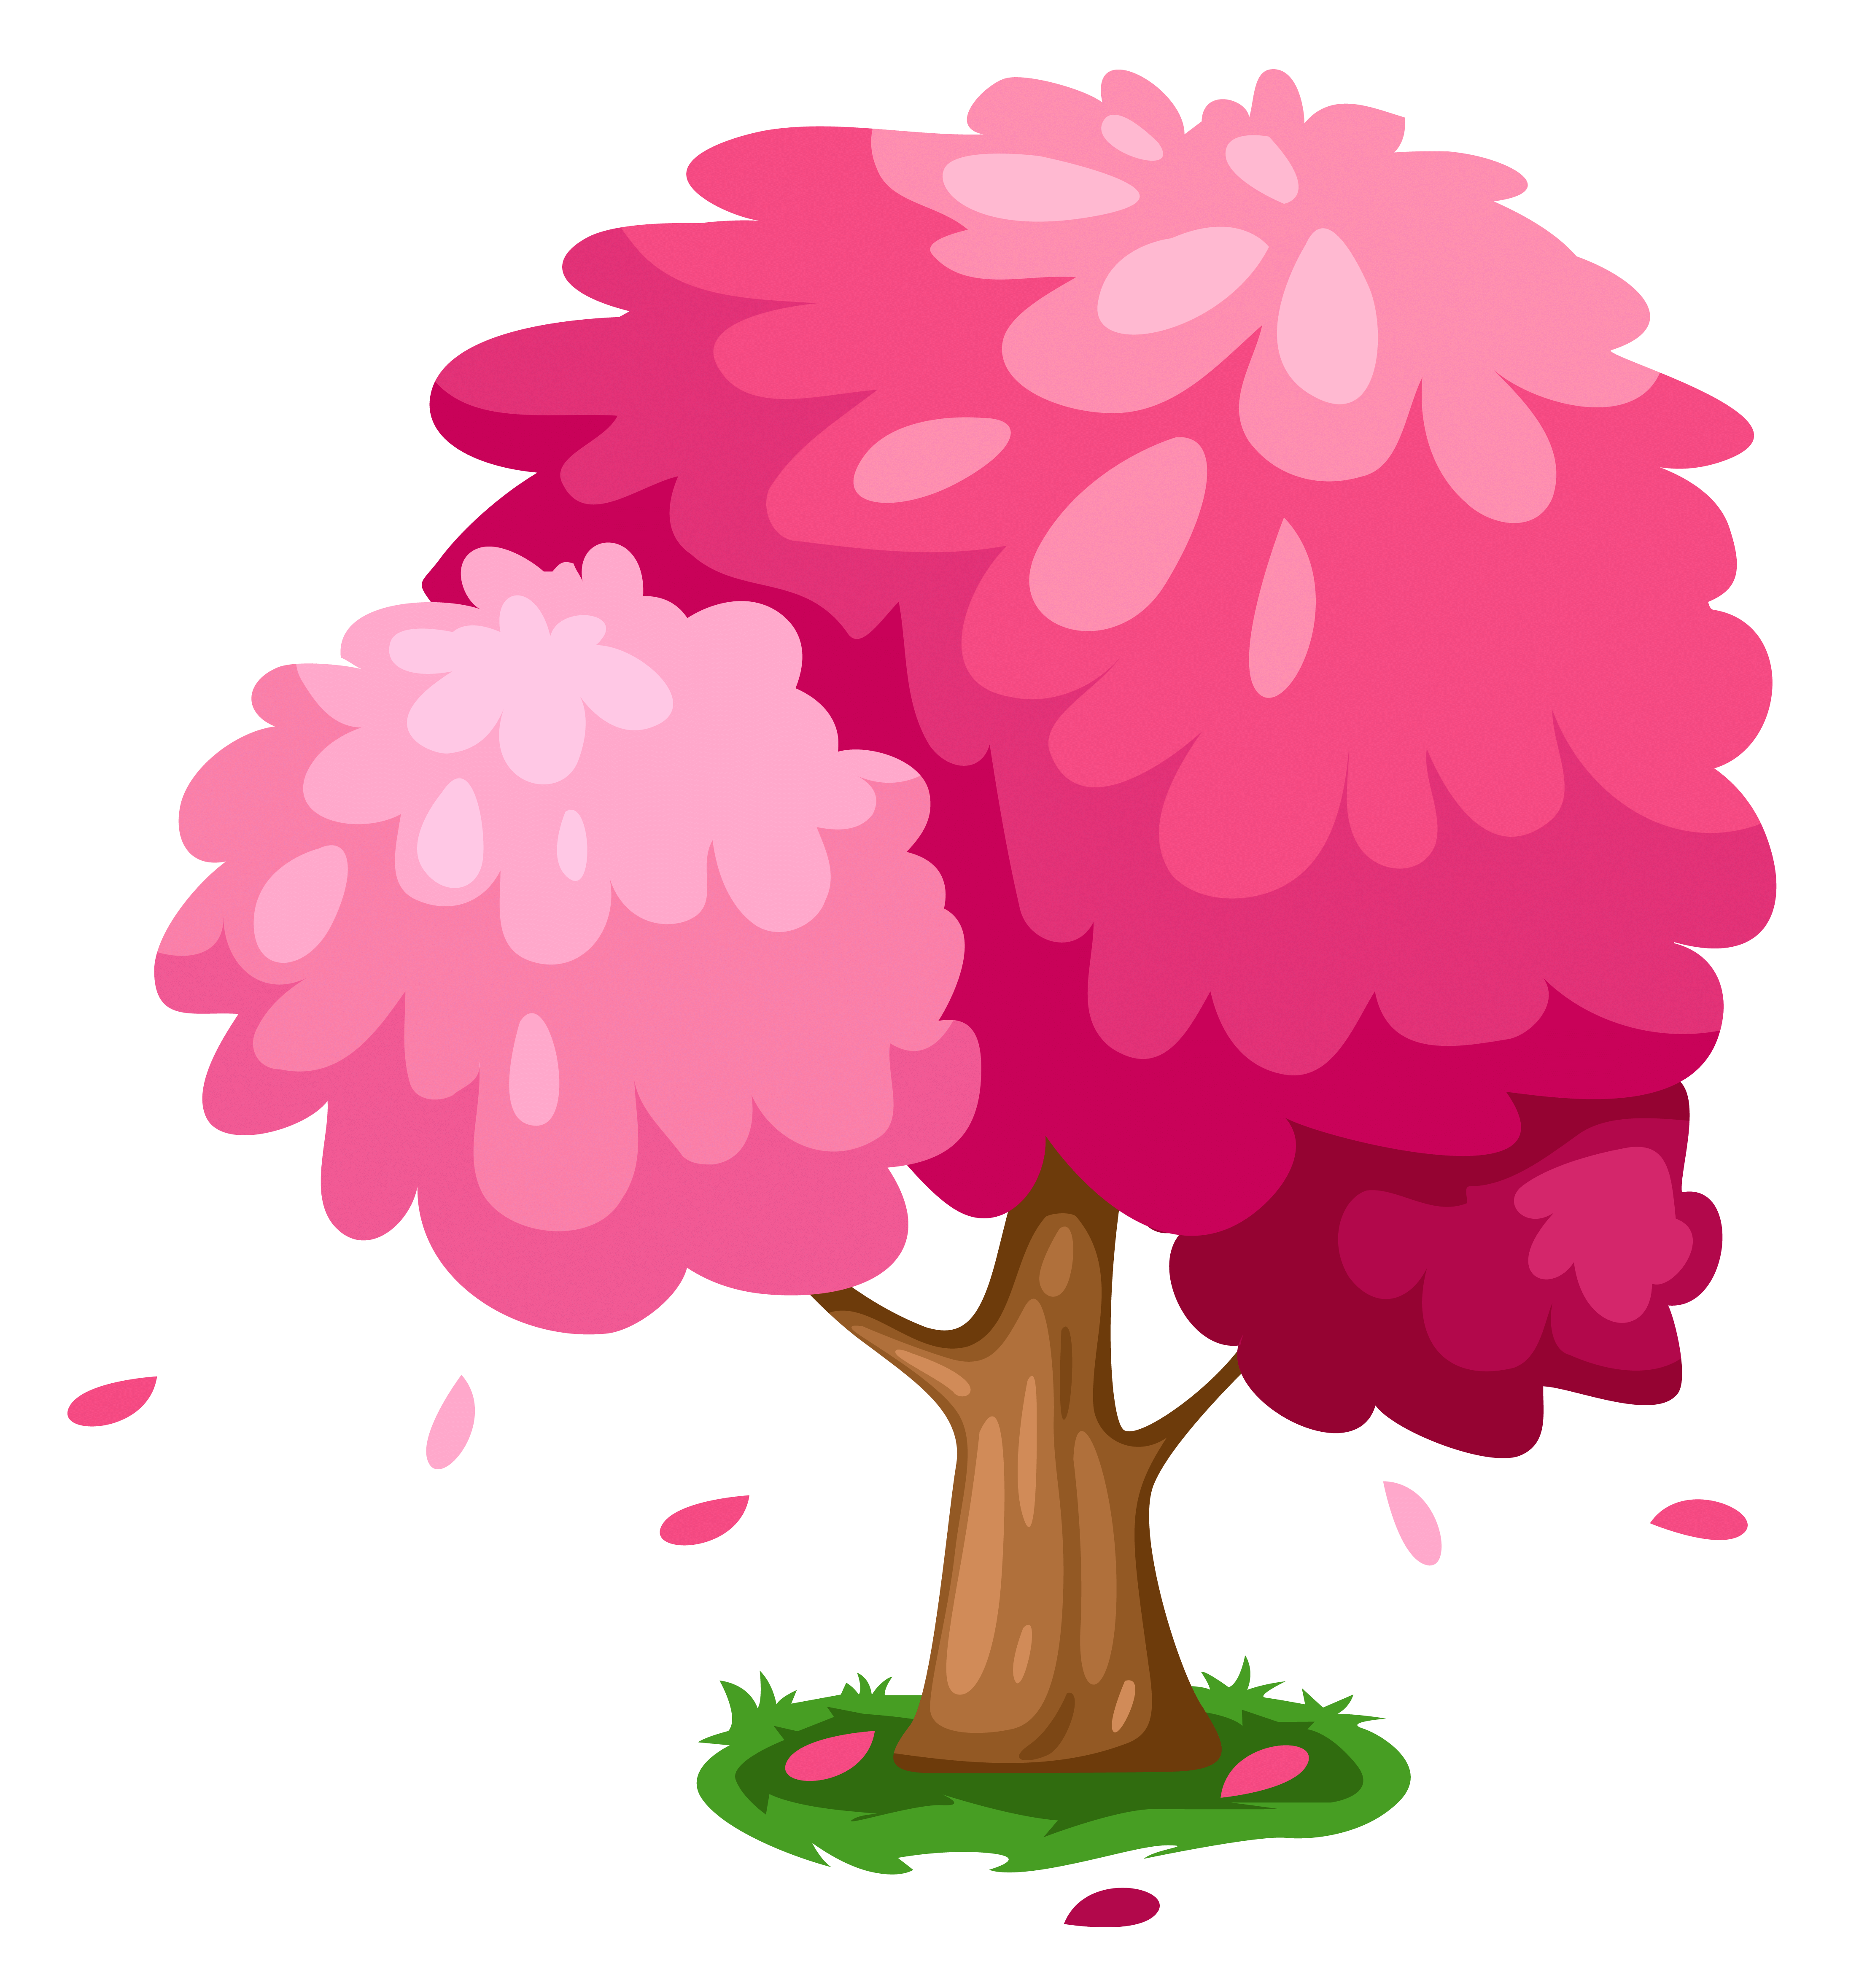 Cute oak tree clipart clip art freeuse library Oak Trees Clipart at GetDrawings.com | Free for personal use Oak ... clip art freeuse library